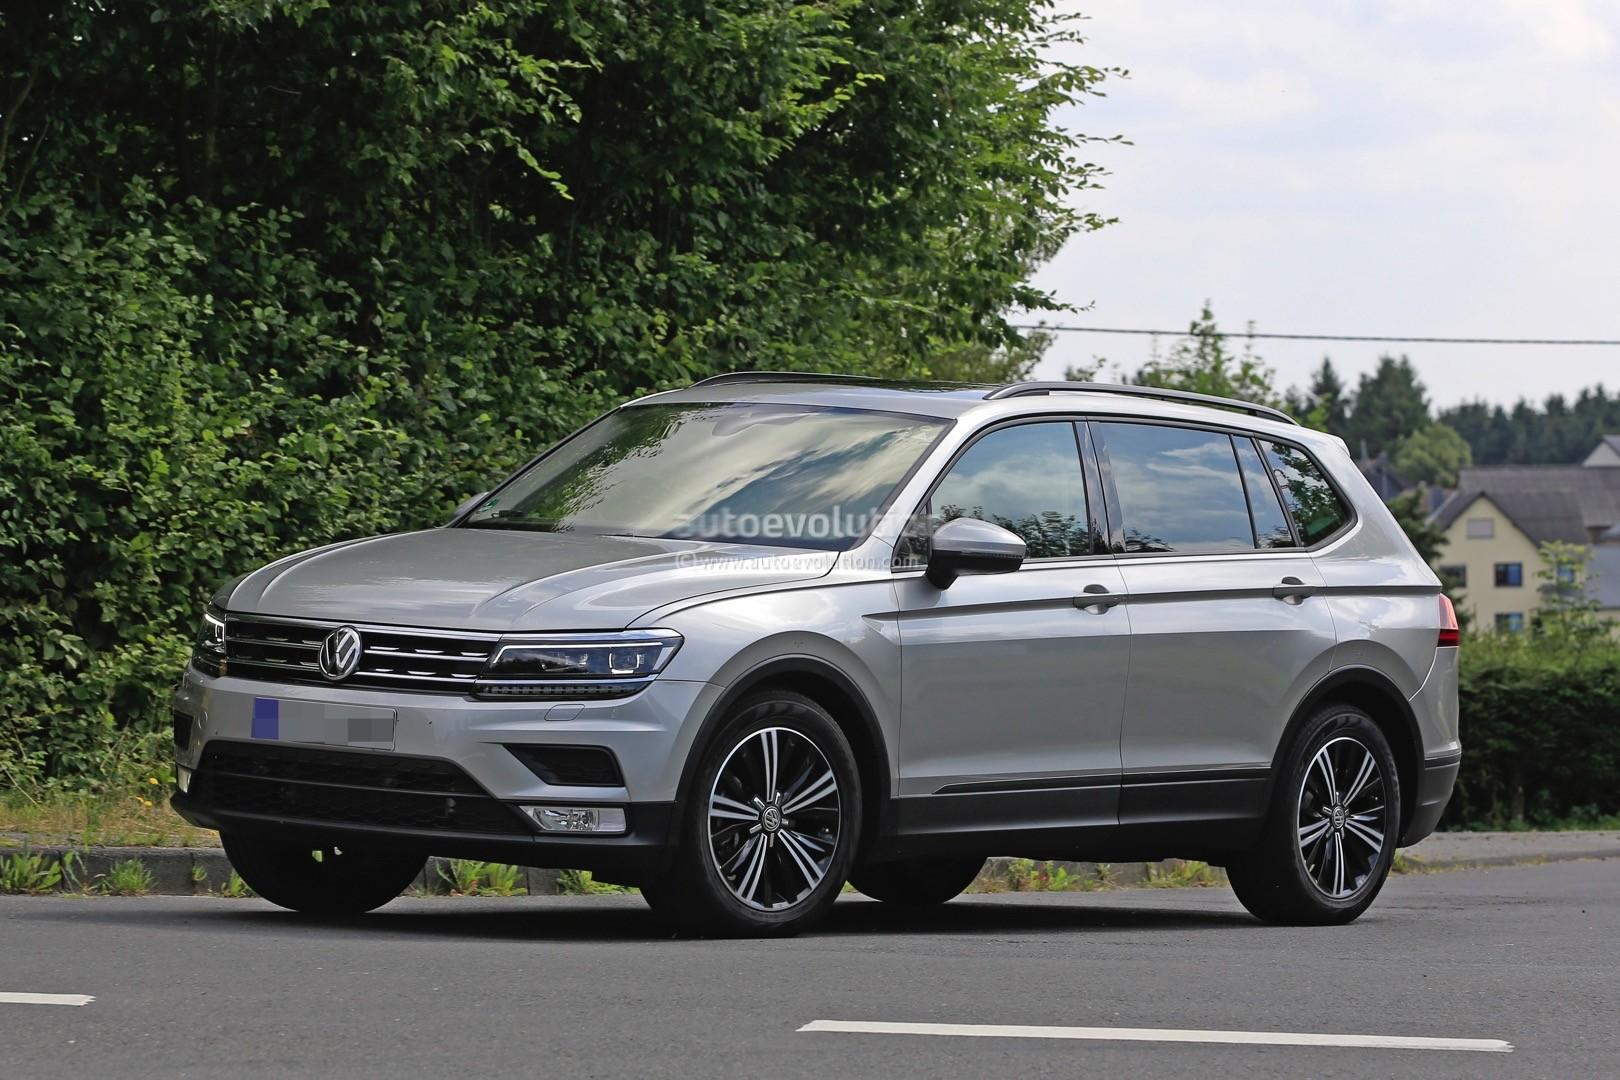 2017 volkswagen tiguan xl spied without camouflage looks exactly as expected autoevolution